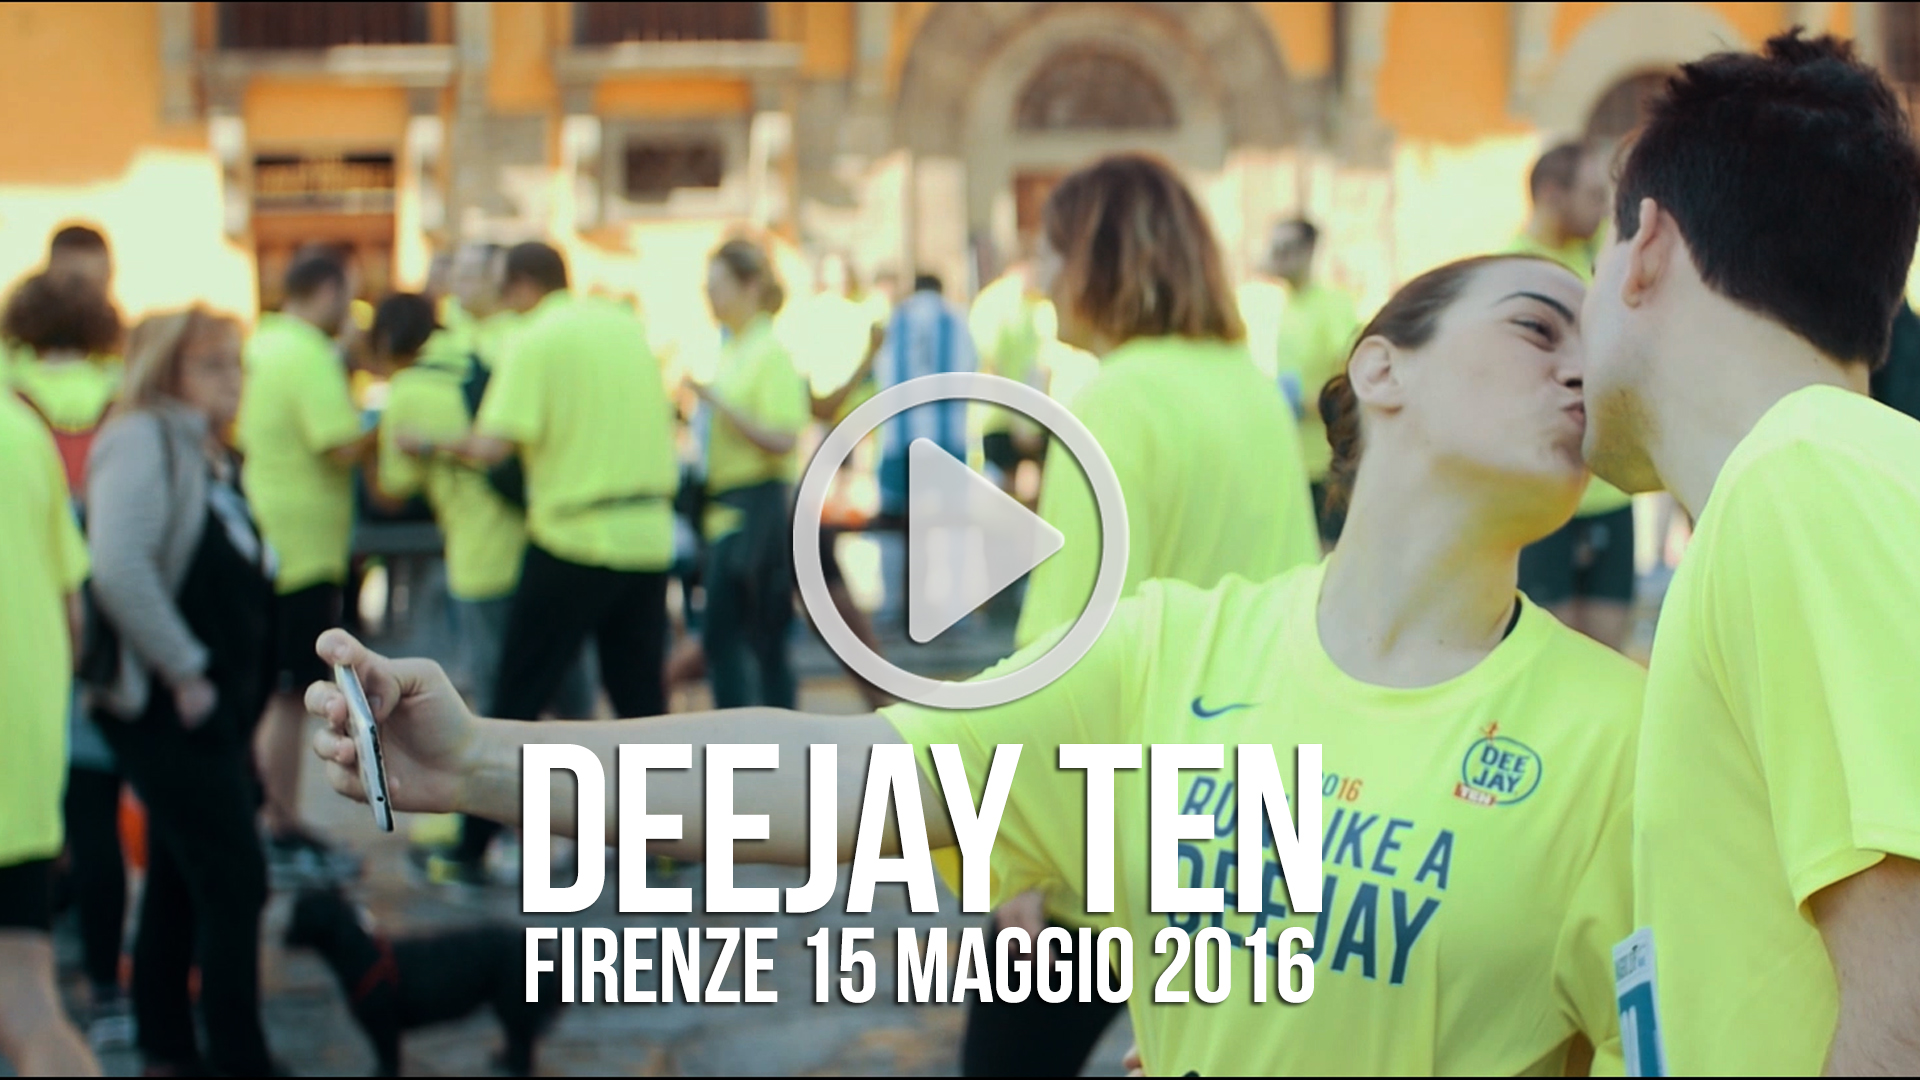 DEEJAY TEN FIRENZE 2016